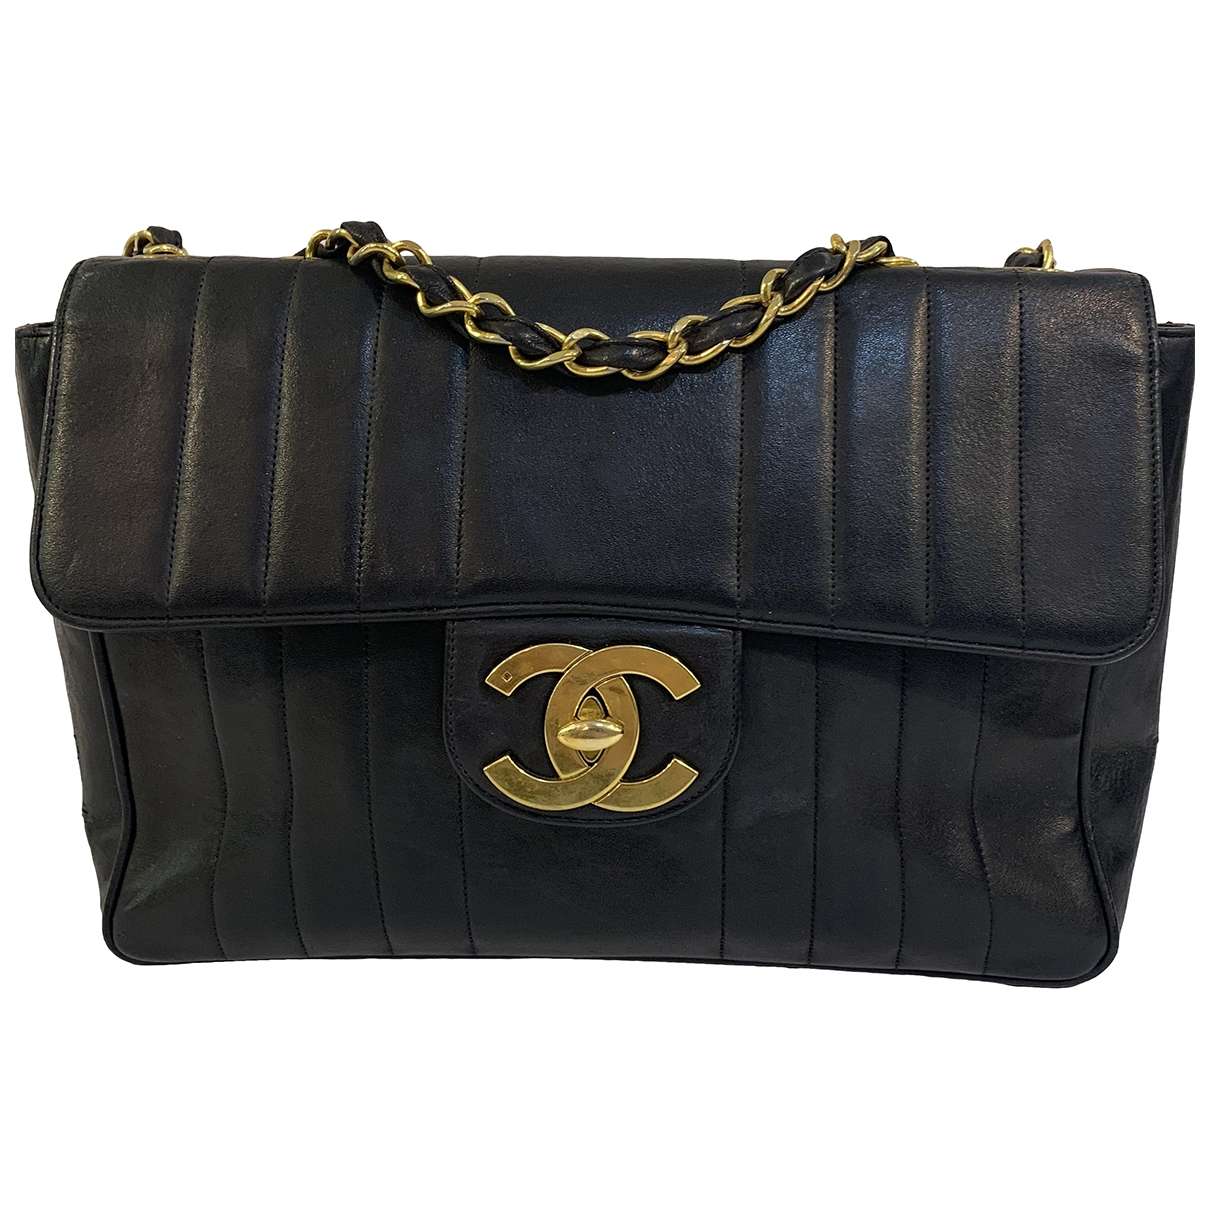 Chanel \N Black Leather handbag for Women \N